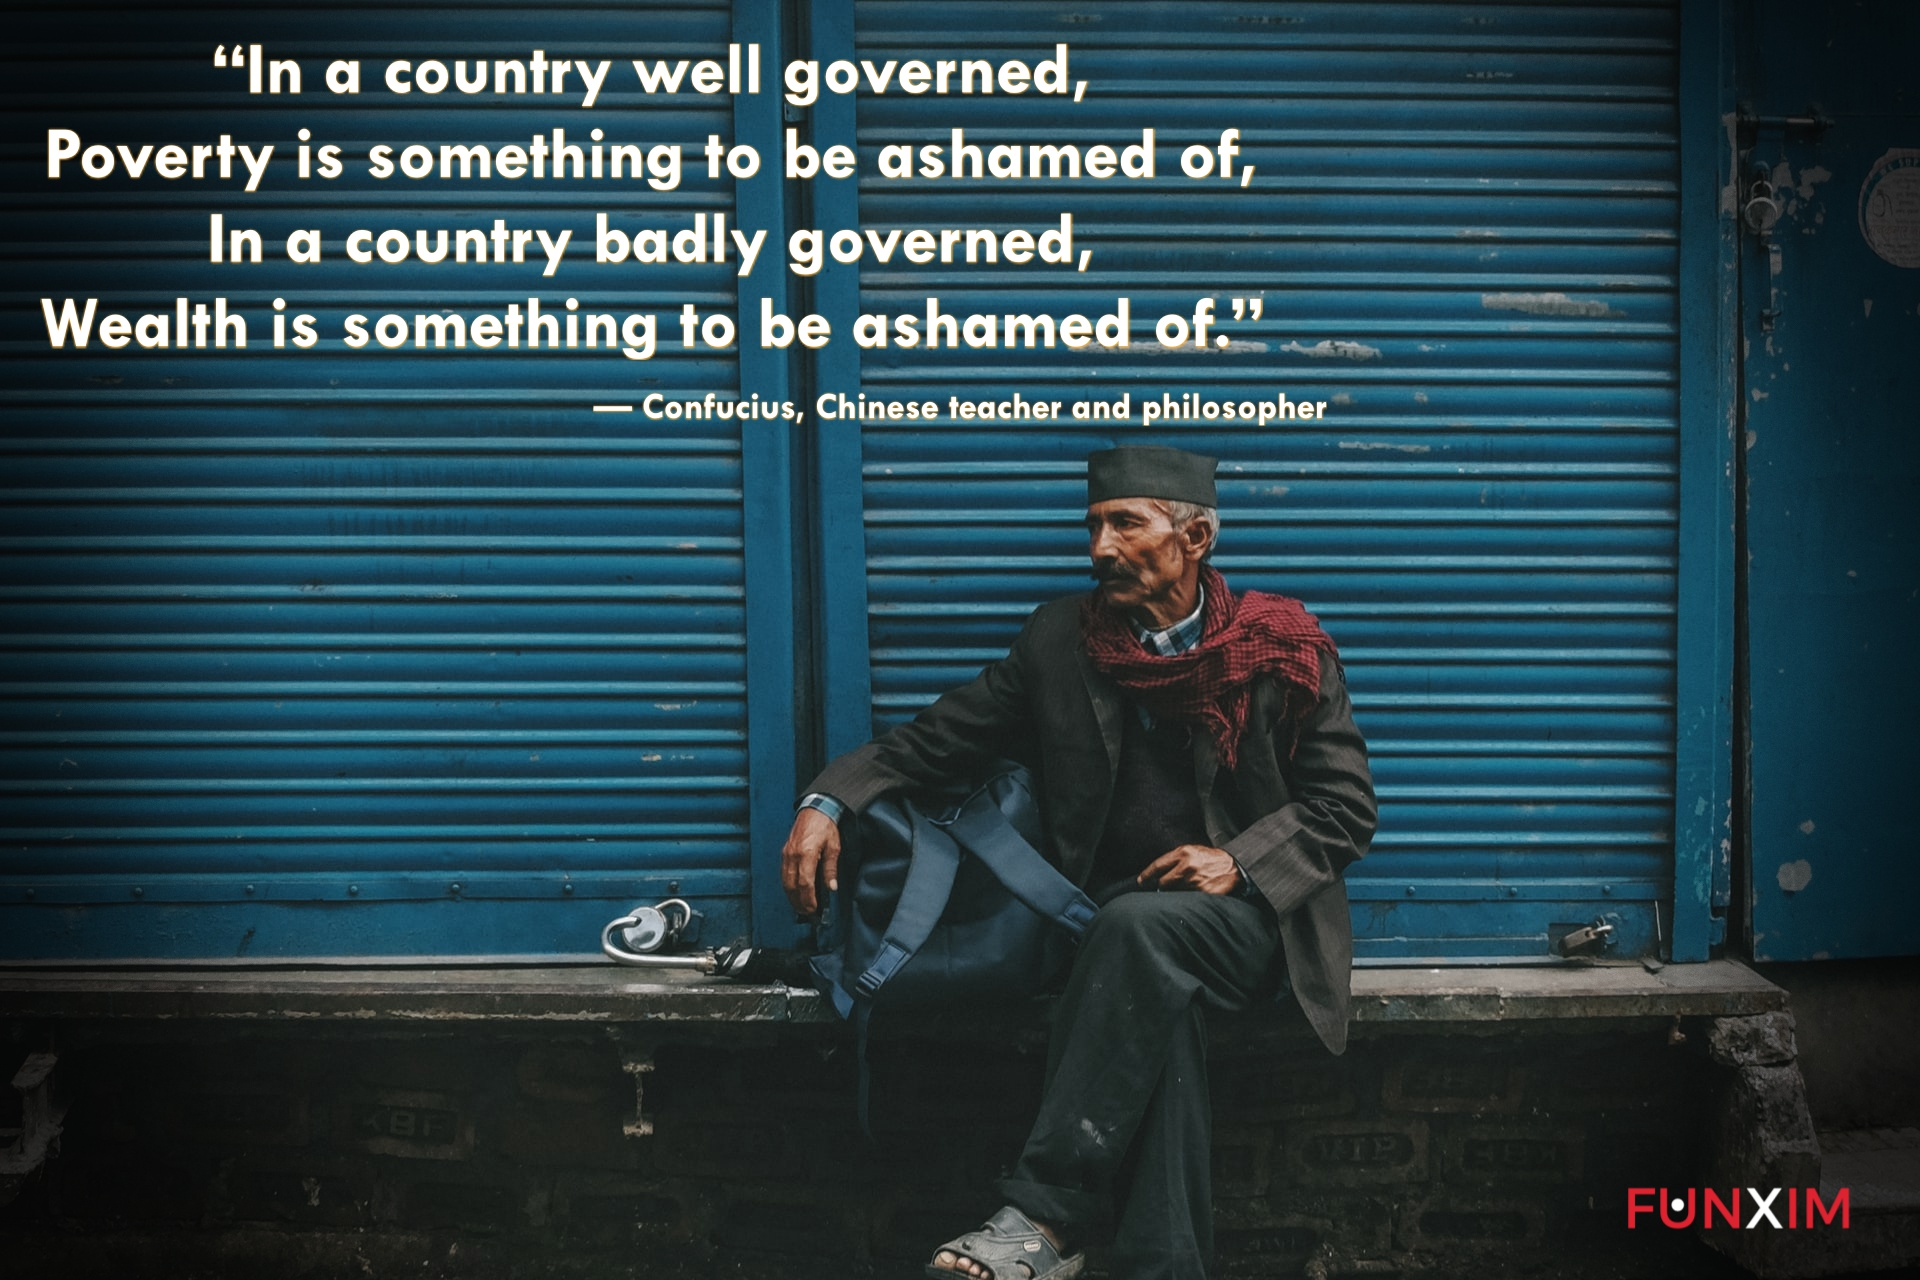 """""""In a country well governed, poverty is something to be ashamed of. In a country badly governed, wealth is something to be ashamed of."""" — Confucius, Chinese teacher and philosopher"""